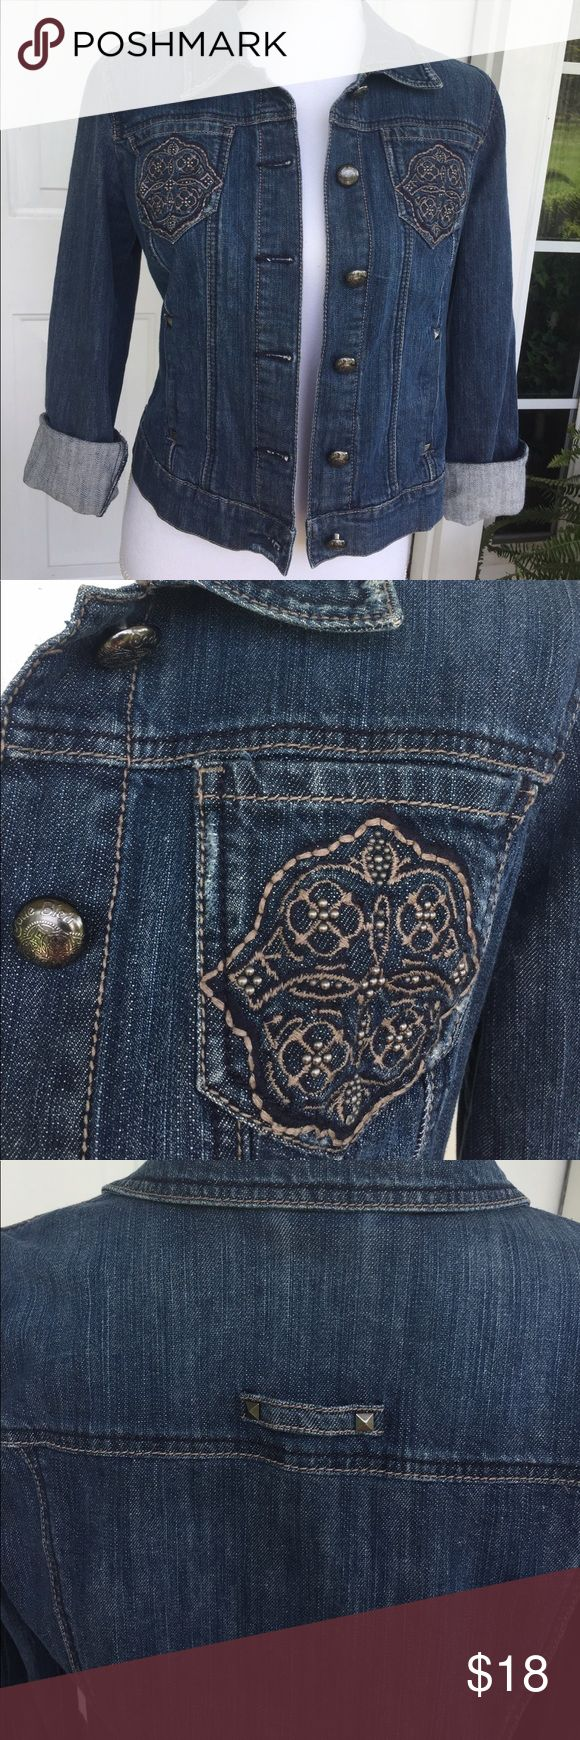 "Denim Jacket Versatile denim jacket from Code Bleu. Beautiful embroidered and bead detail on front pockets. Great item to wear with anything or personalize it with your own buttons or patches. Size small, measuring 17"" pit-pit and 21"" long. EUC.                                                                   Check out the awesome selection of patches and decorations @begoniablush Code Bleu Jackets & Coats Jean Jackets"